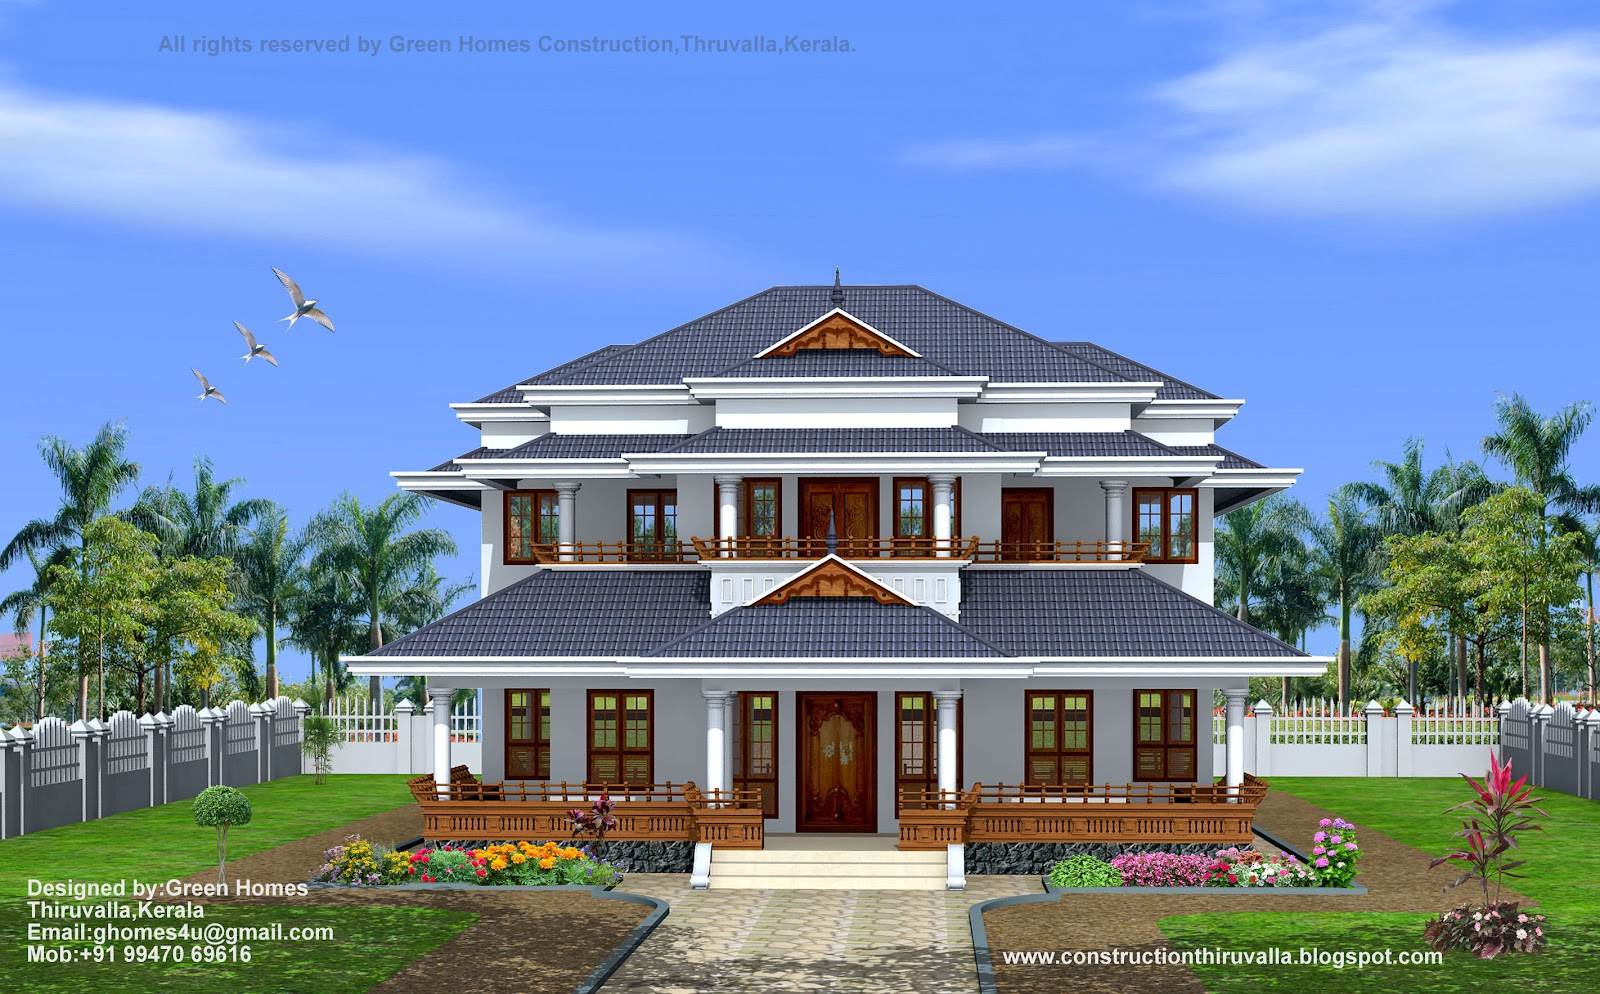 Green homes traditional style kerala home design 3450 sq feet for Traditional style house